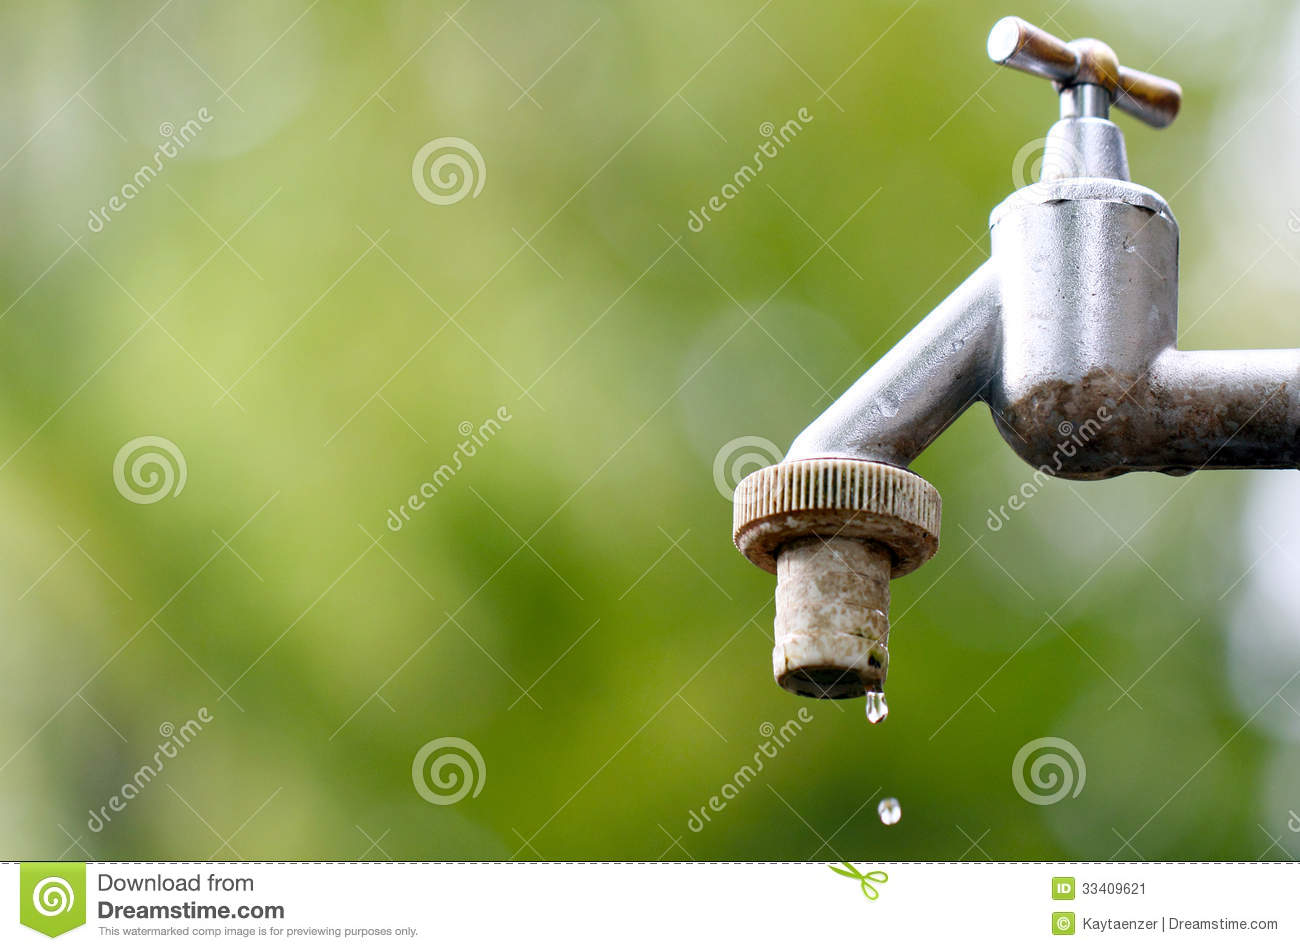 Dripping faucet stock image. Image of cemetery, drought - 33409621